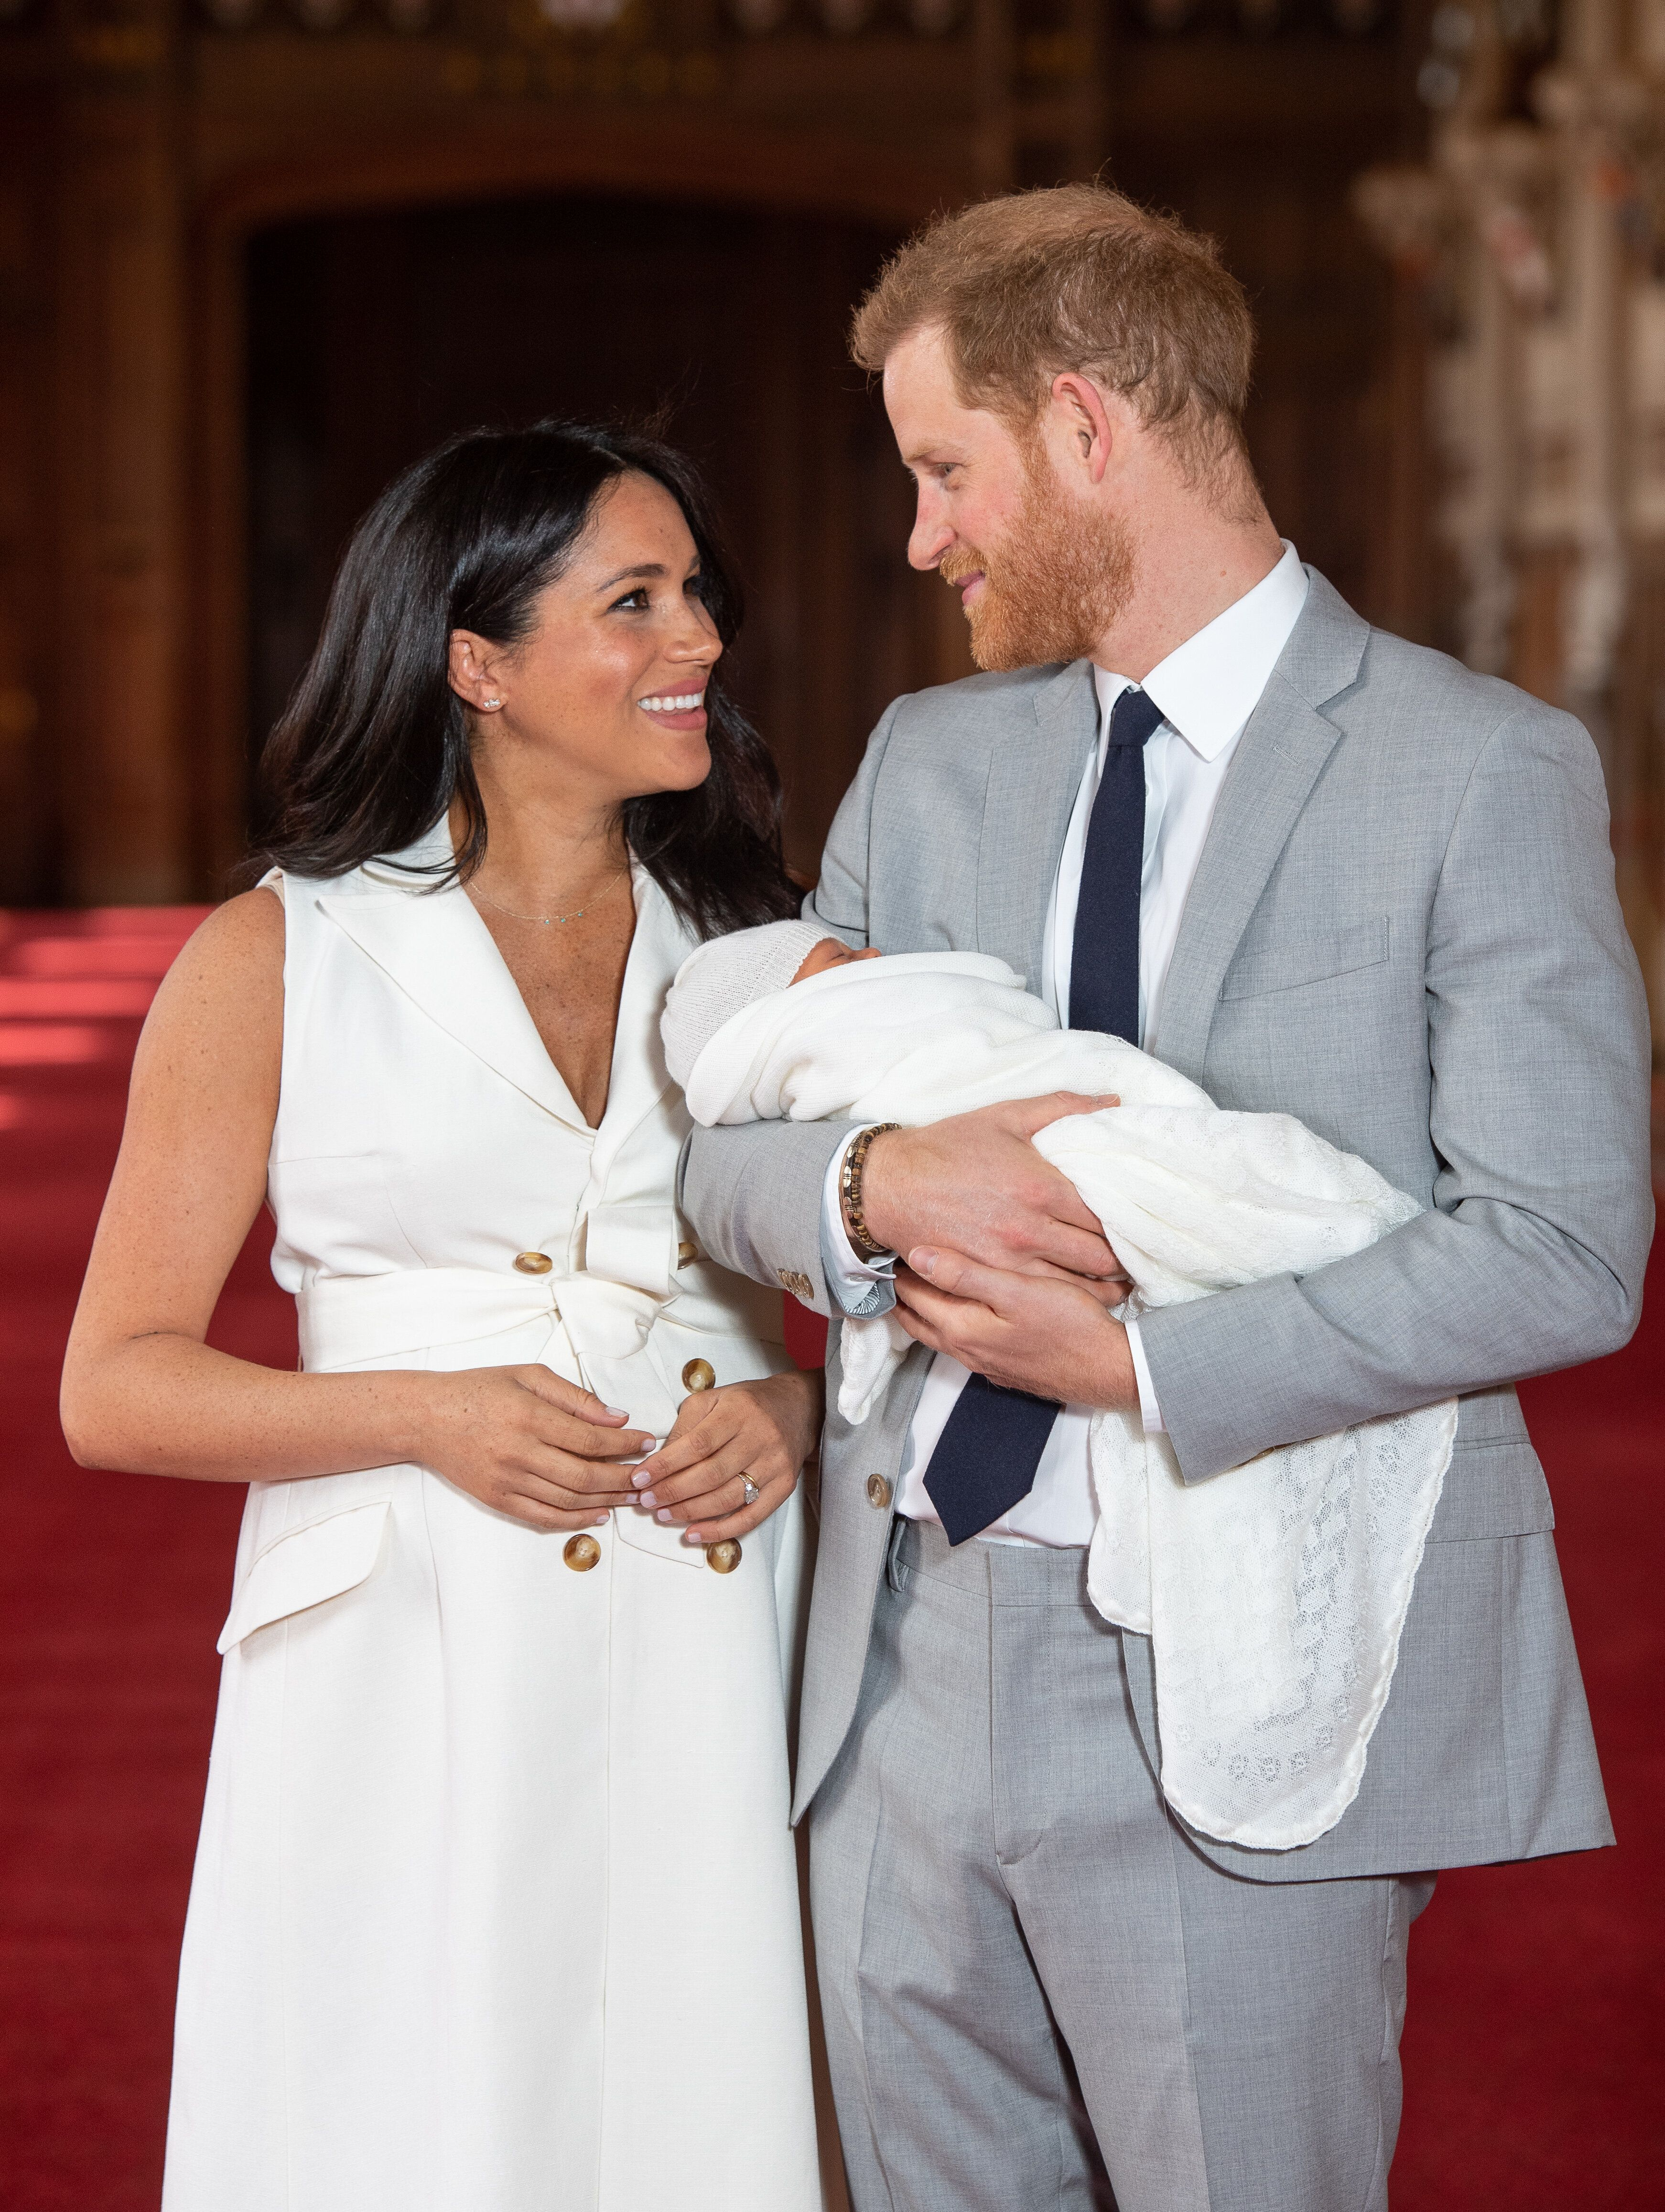 Royal Family's Website Makes Major Mistake About Who Archie's Parents